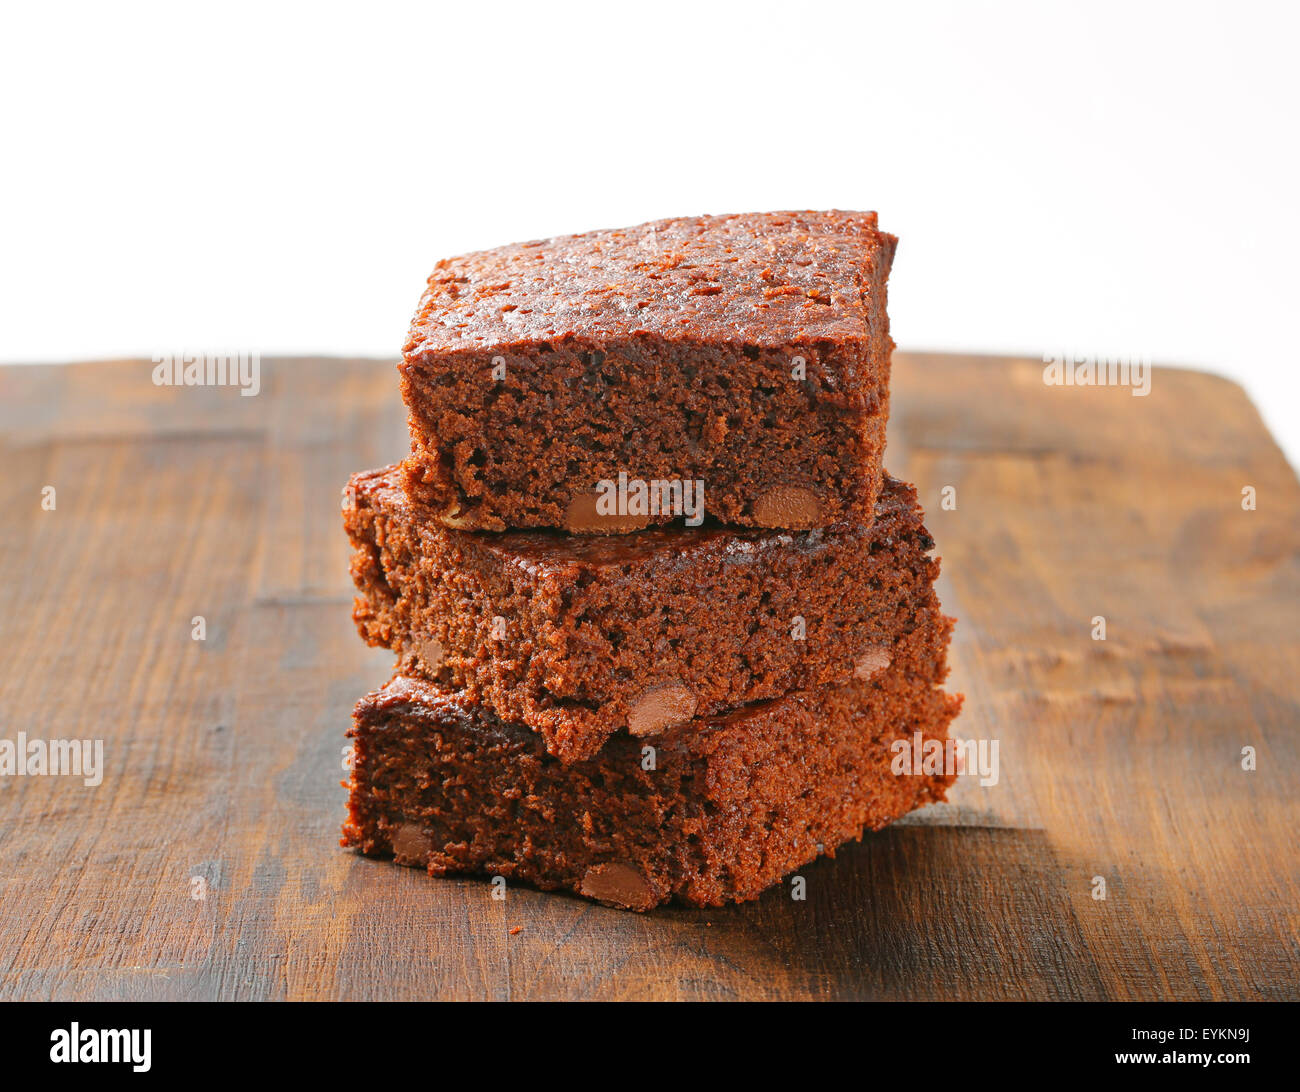 Pile of Fudgy Chocolate Chip Brownies - Stock Image